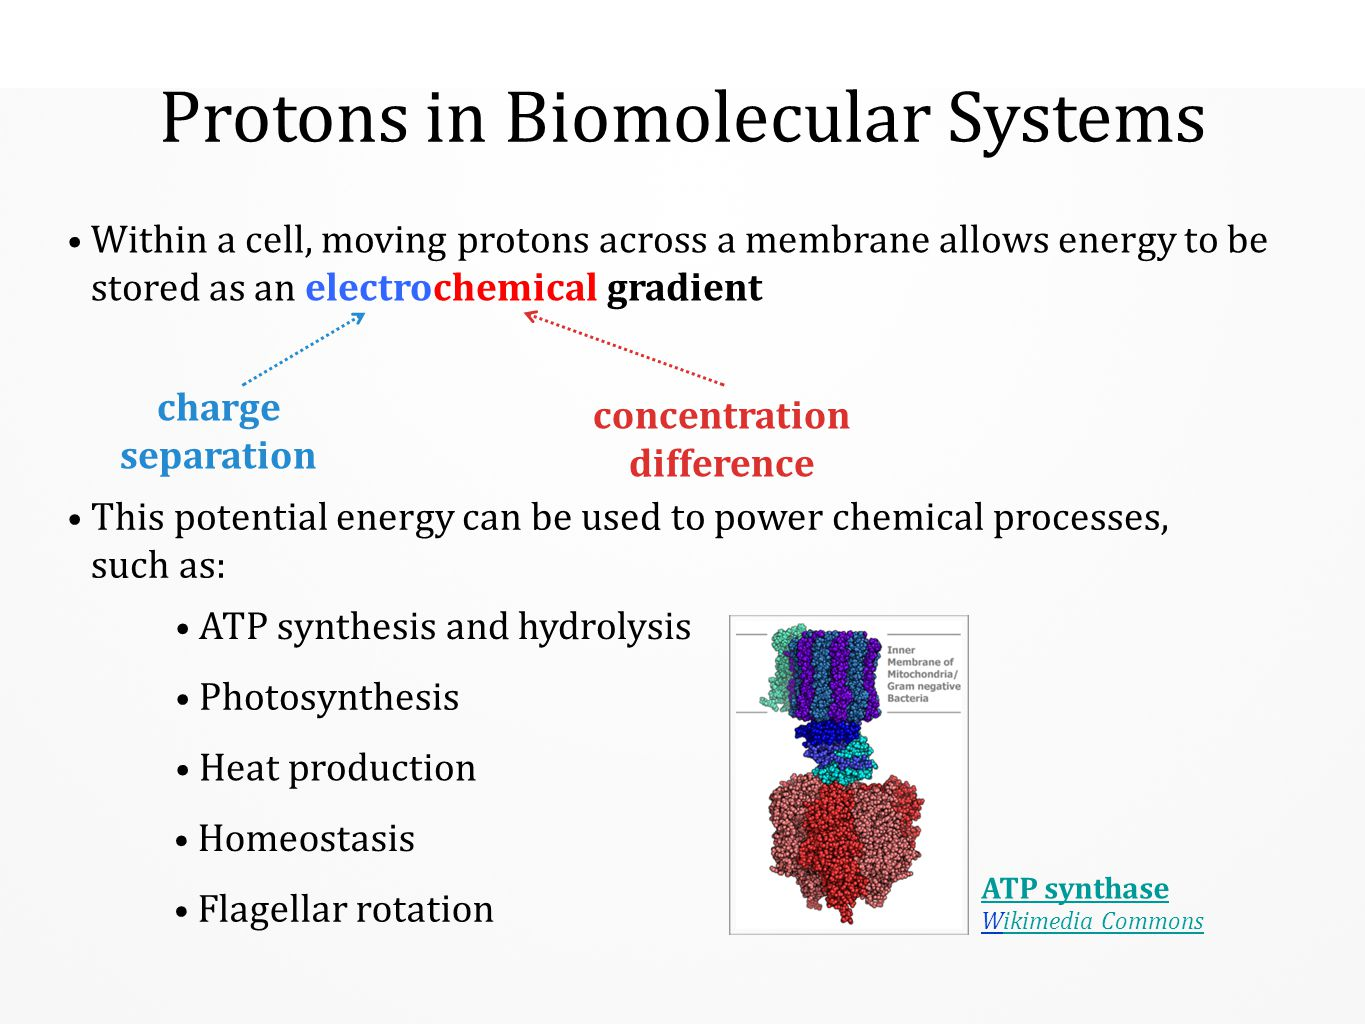 Protons in Biomolecular Systems This potential energy can be used to power chemical processes, such as: Within a cell, moving protons across a membran